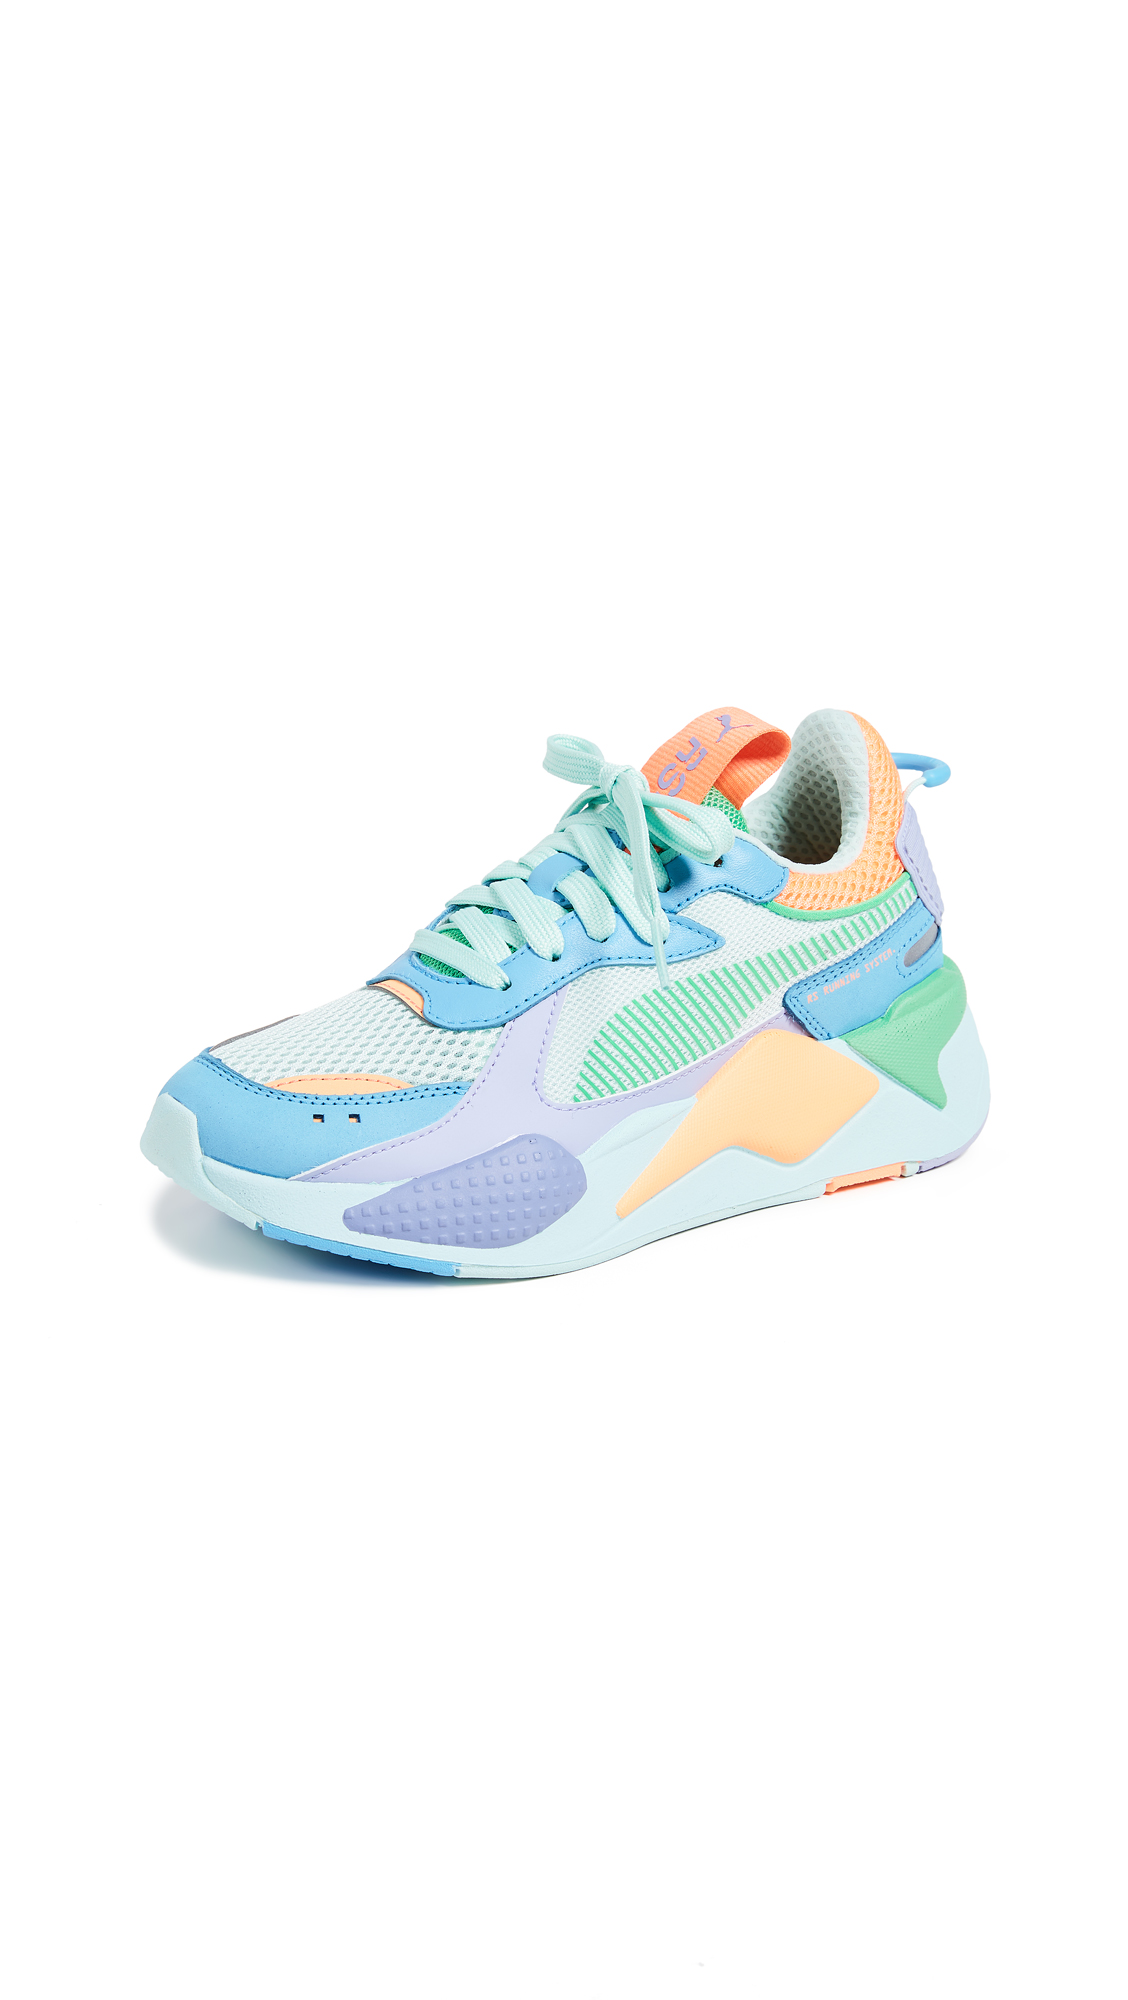 PUMA RS-X Colorblock Sneakers - Green/Blue/Orange/Purple